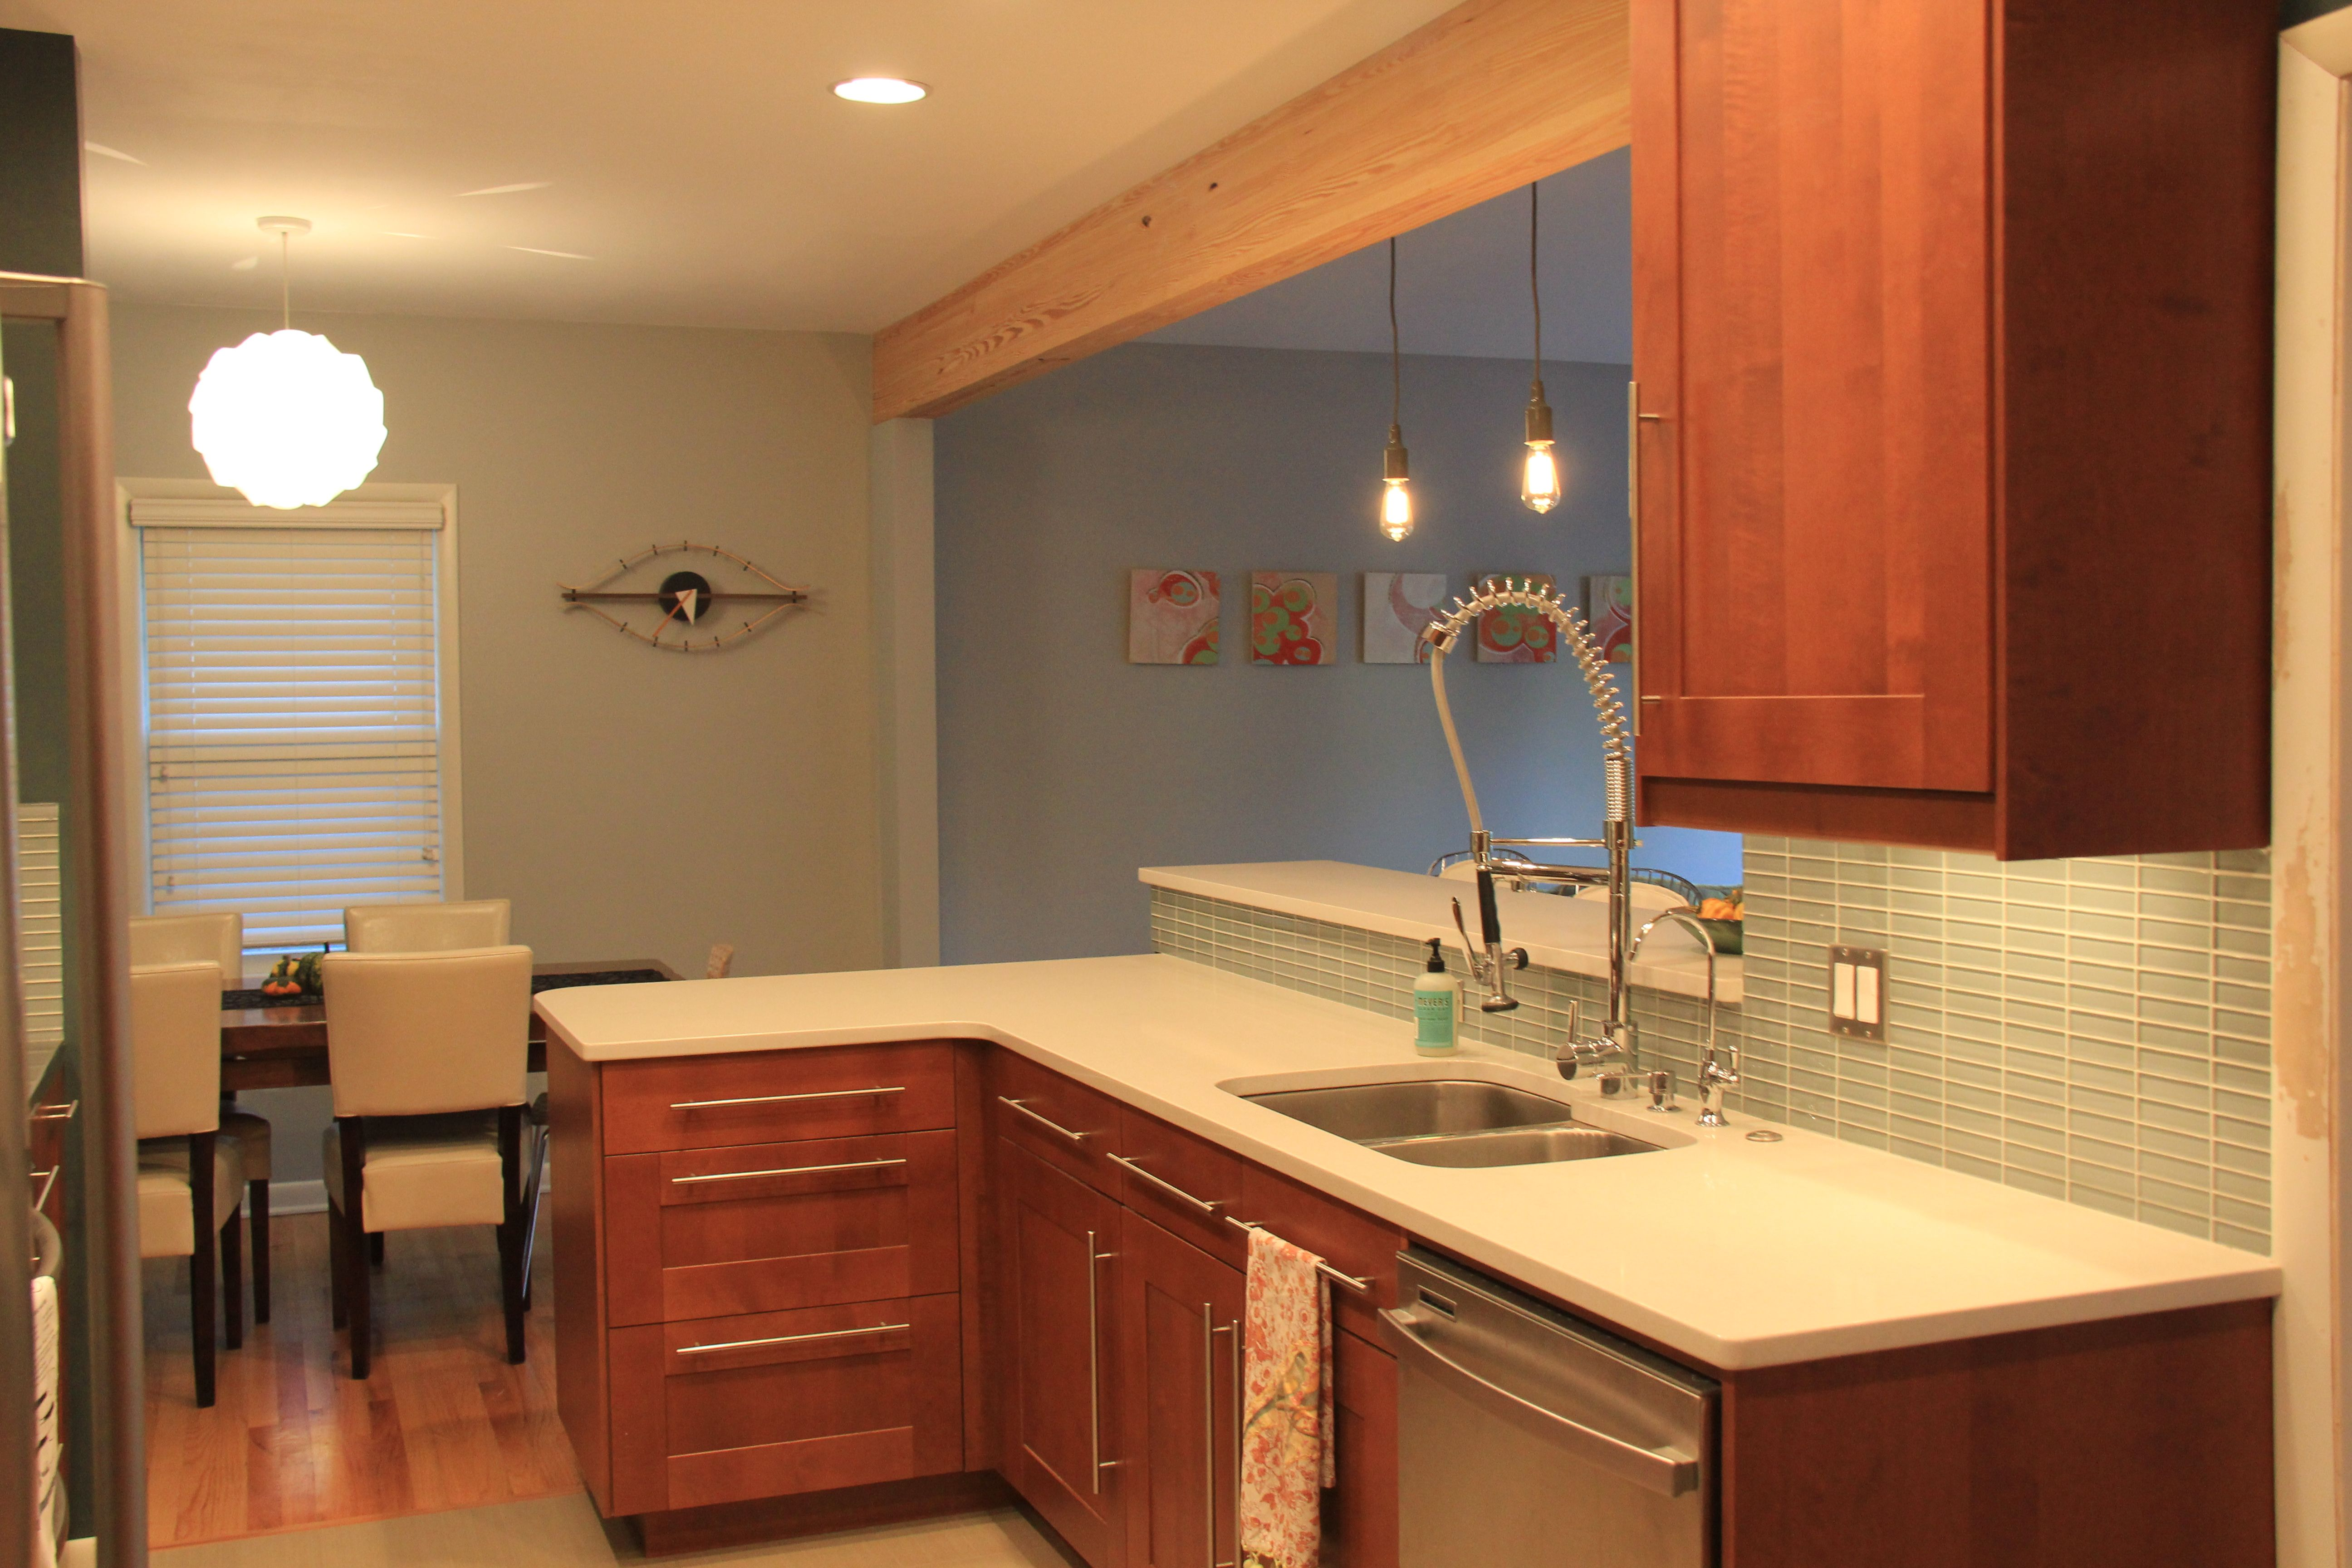 Galley Kitchen Remodelafter These Are Ikea Cabinets Custom Custom Bathroom Remodeling Omaha Design Ideas